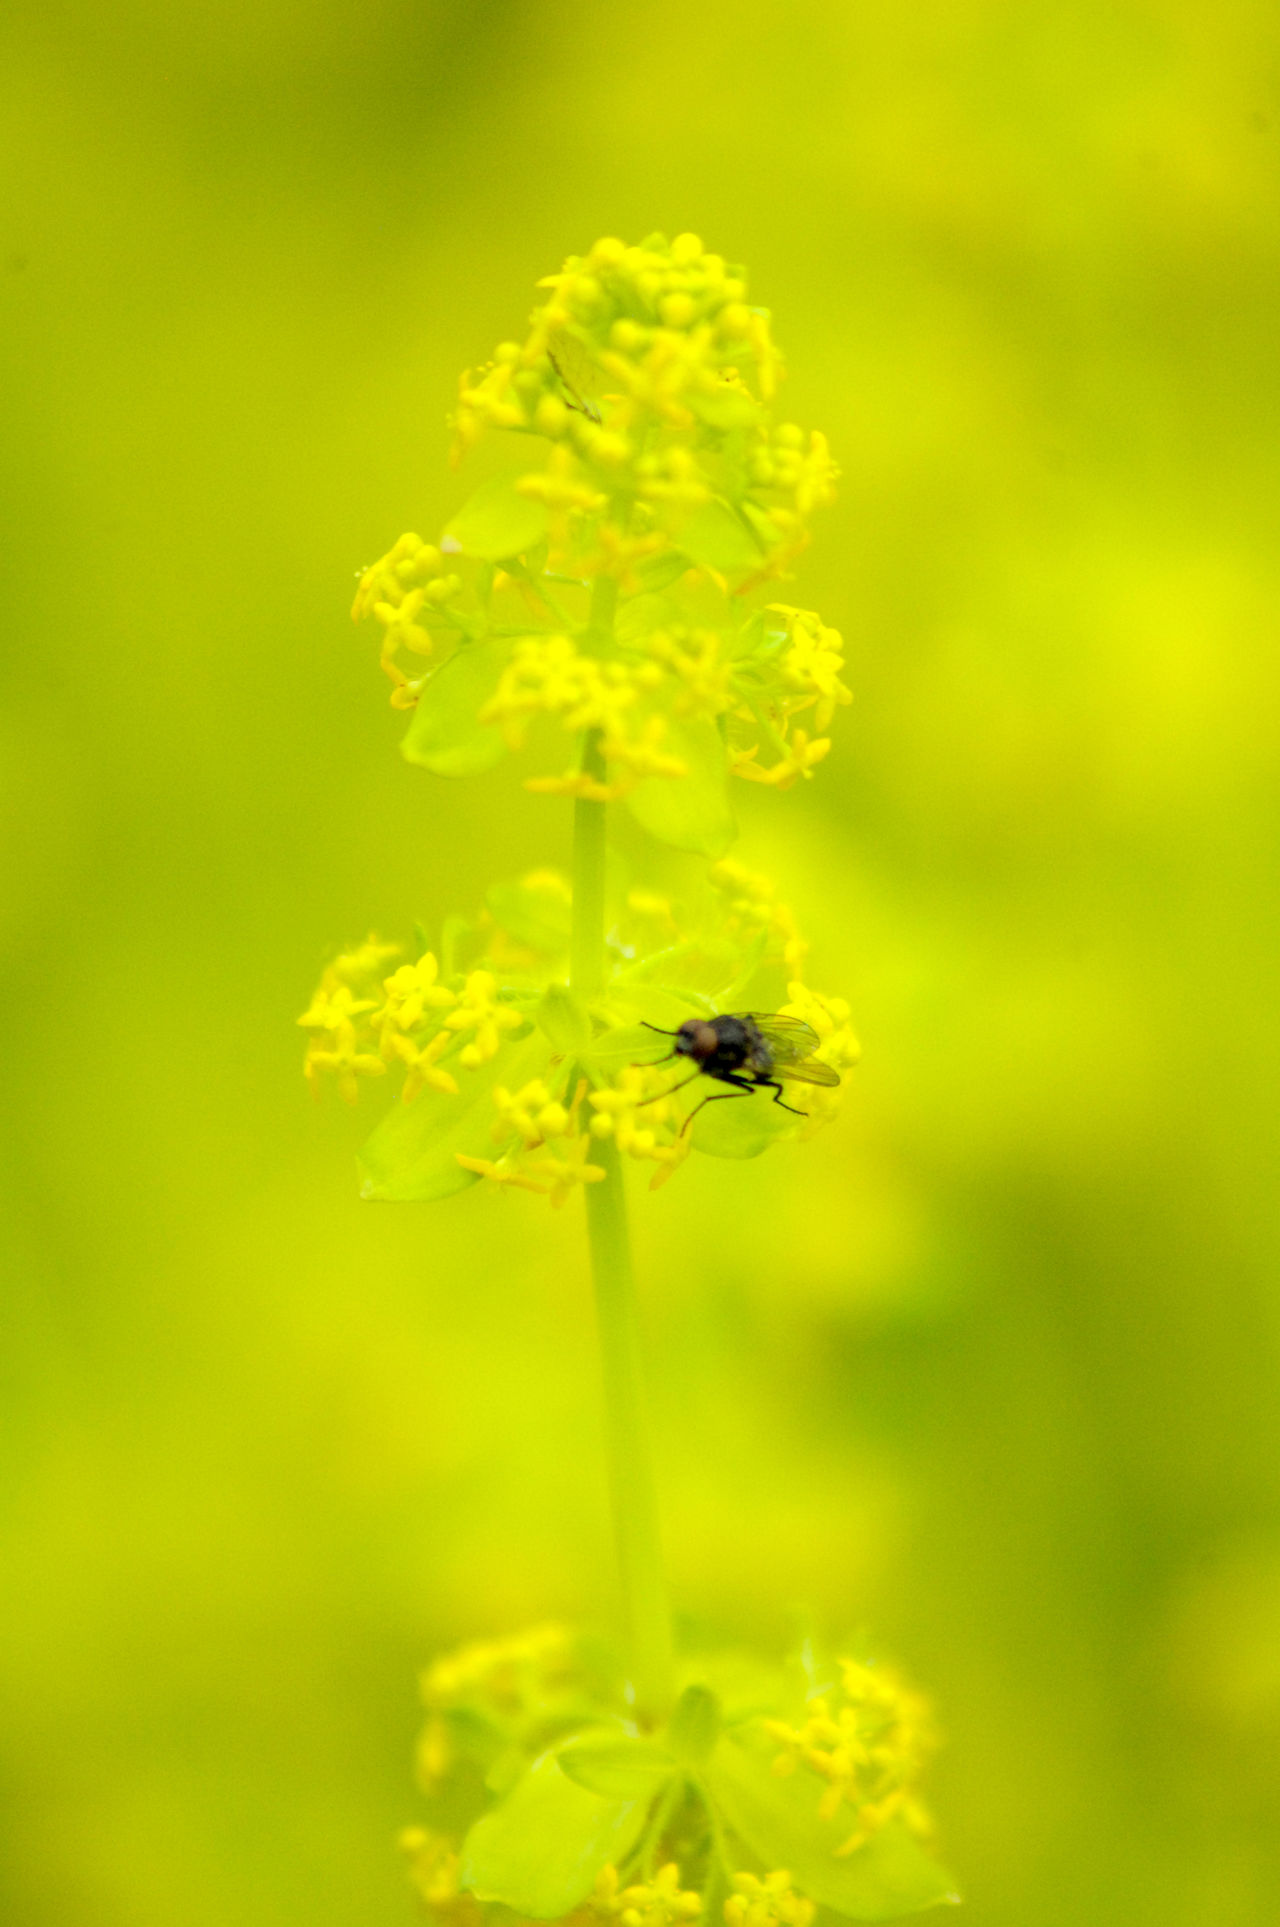 fly Animal Themes Animals In The Wild Bokeh Close-up Day Fly Grass Insect Insects  Nature No People One Animal Outdoors Plant Soft Focus Softness Yellow Yellow Flower